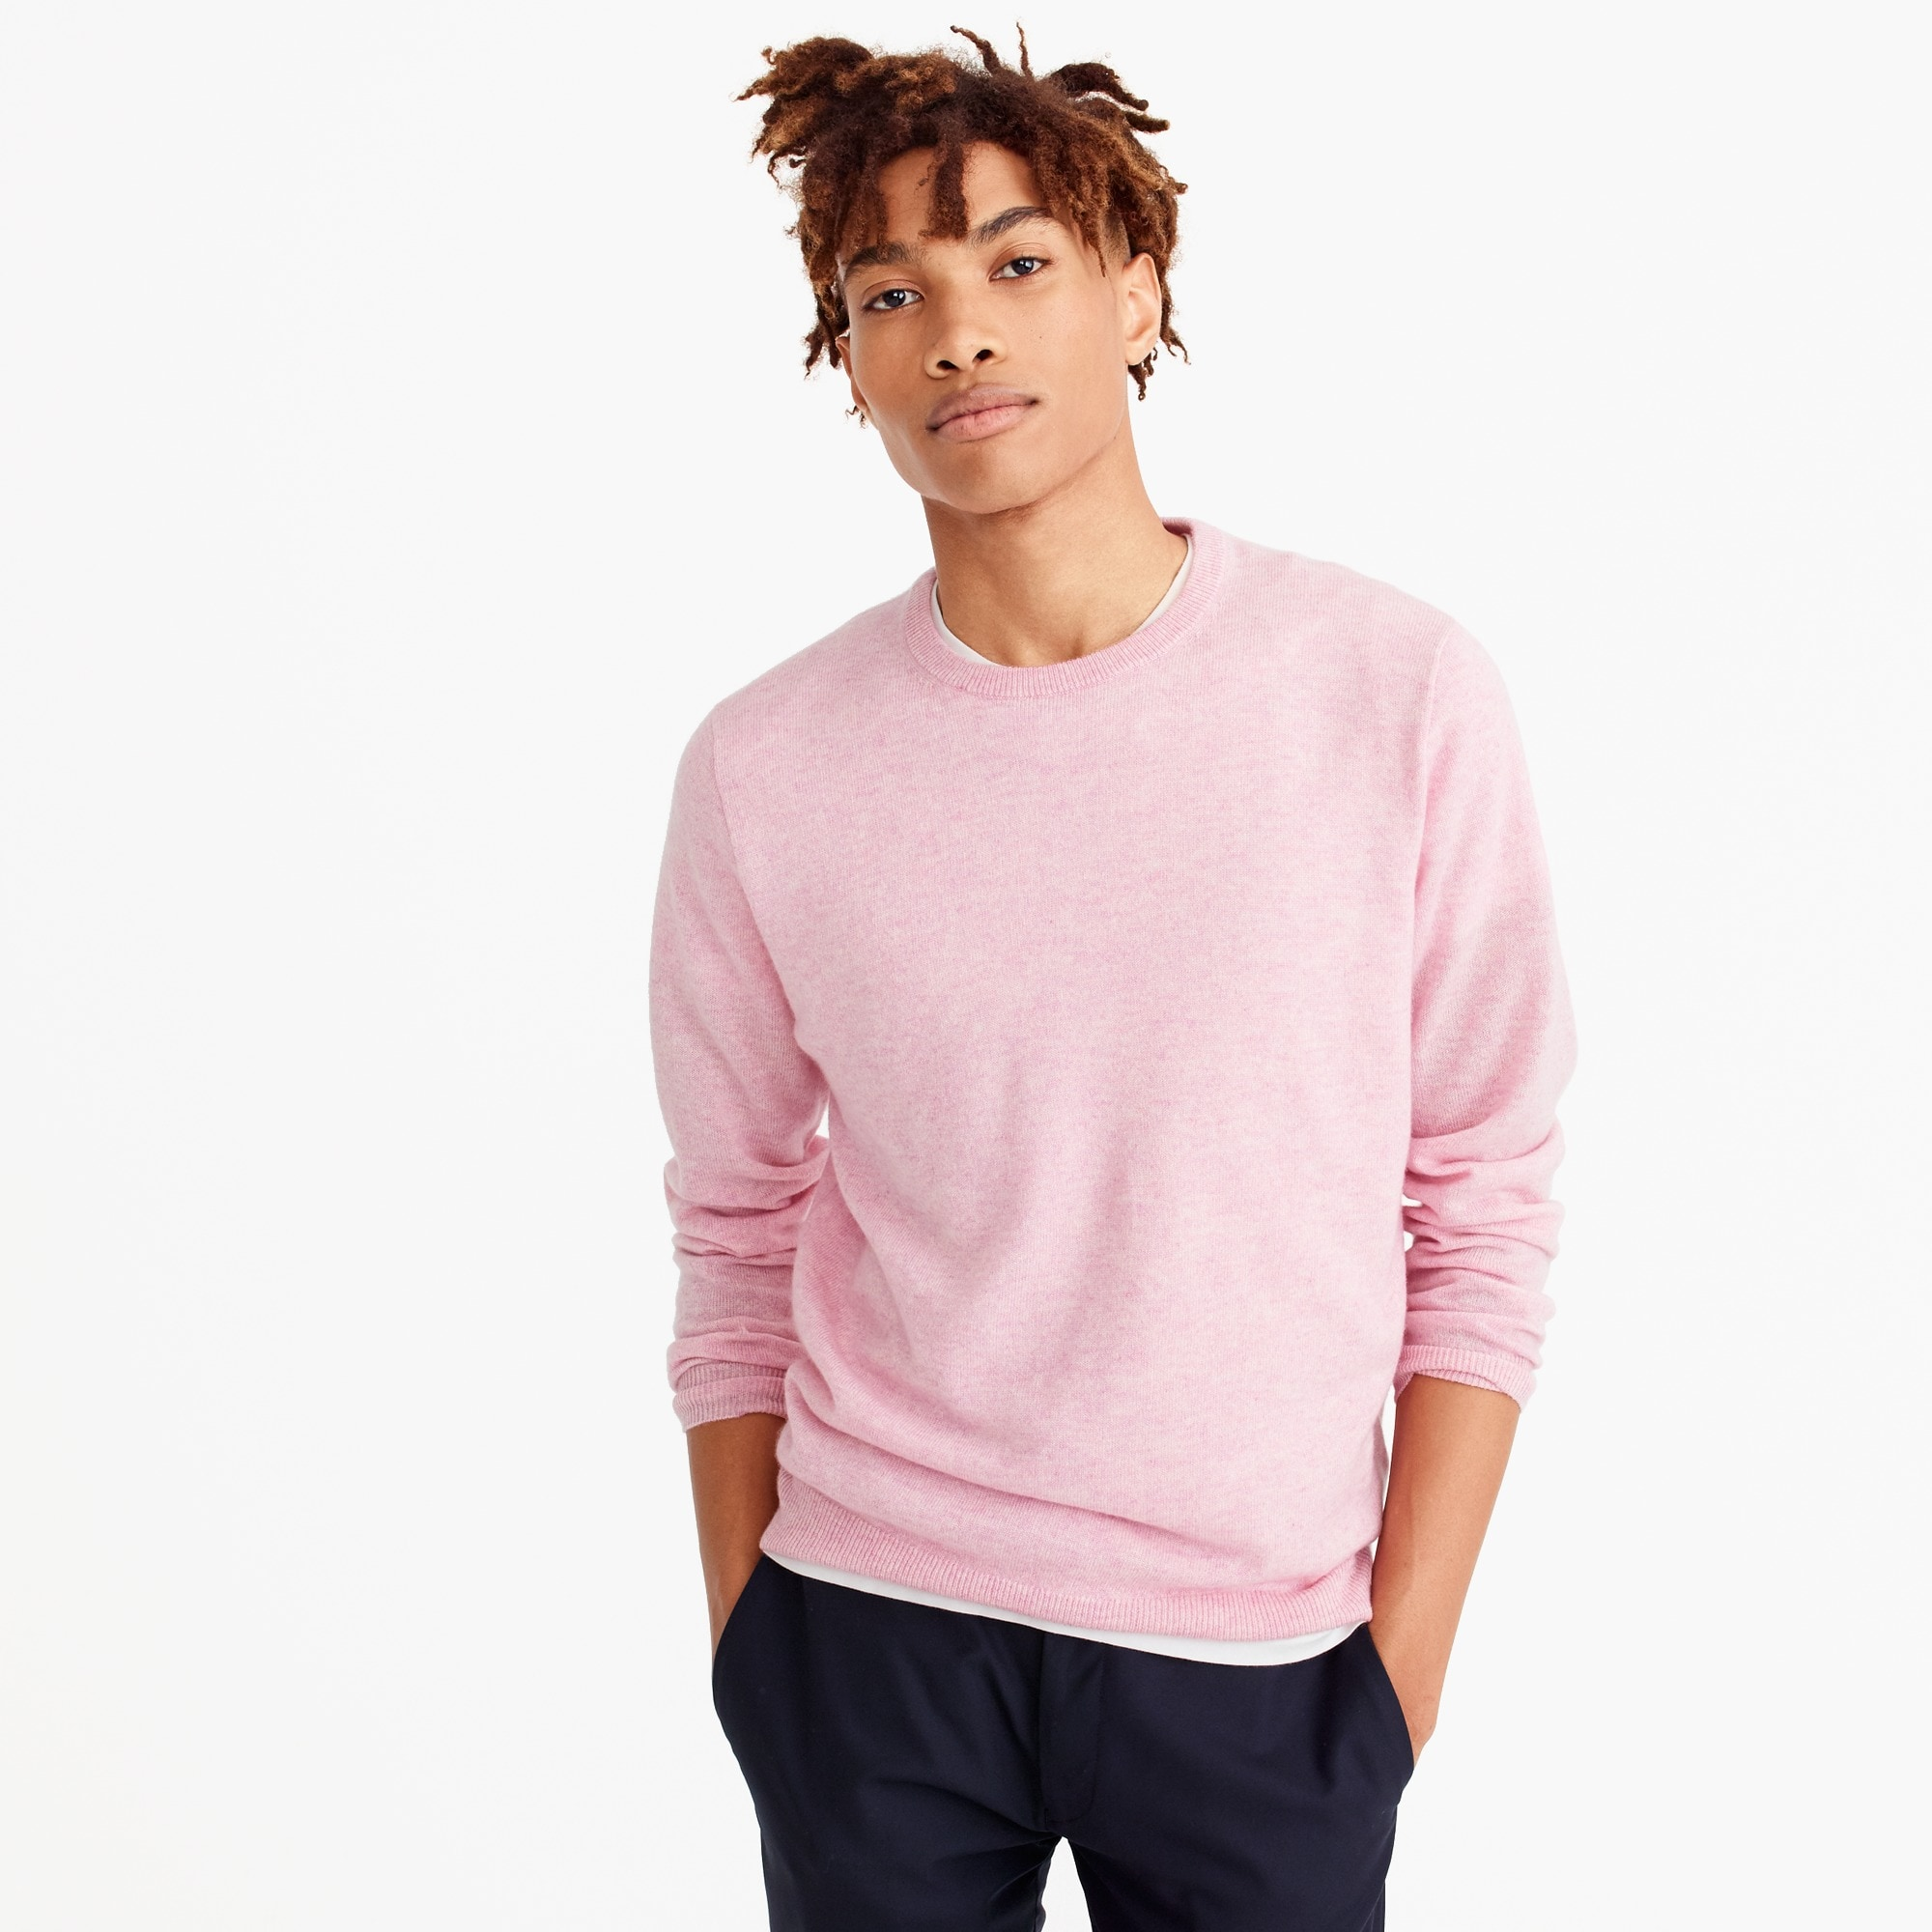 mens Everyday cashmere crewneck sweater